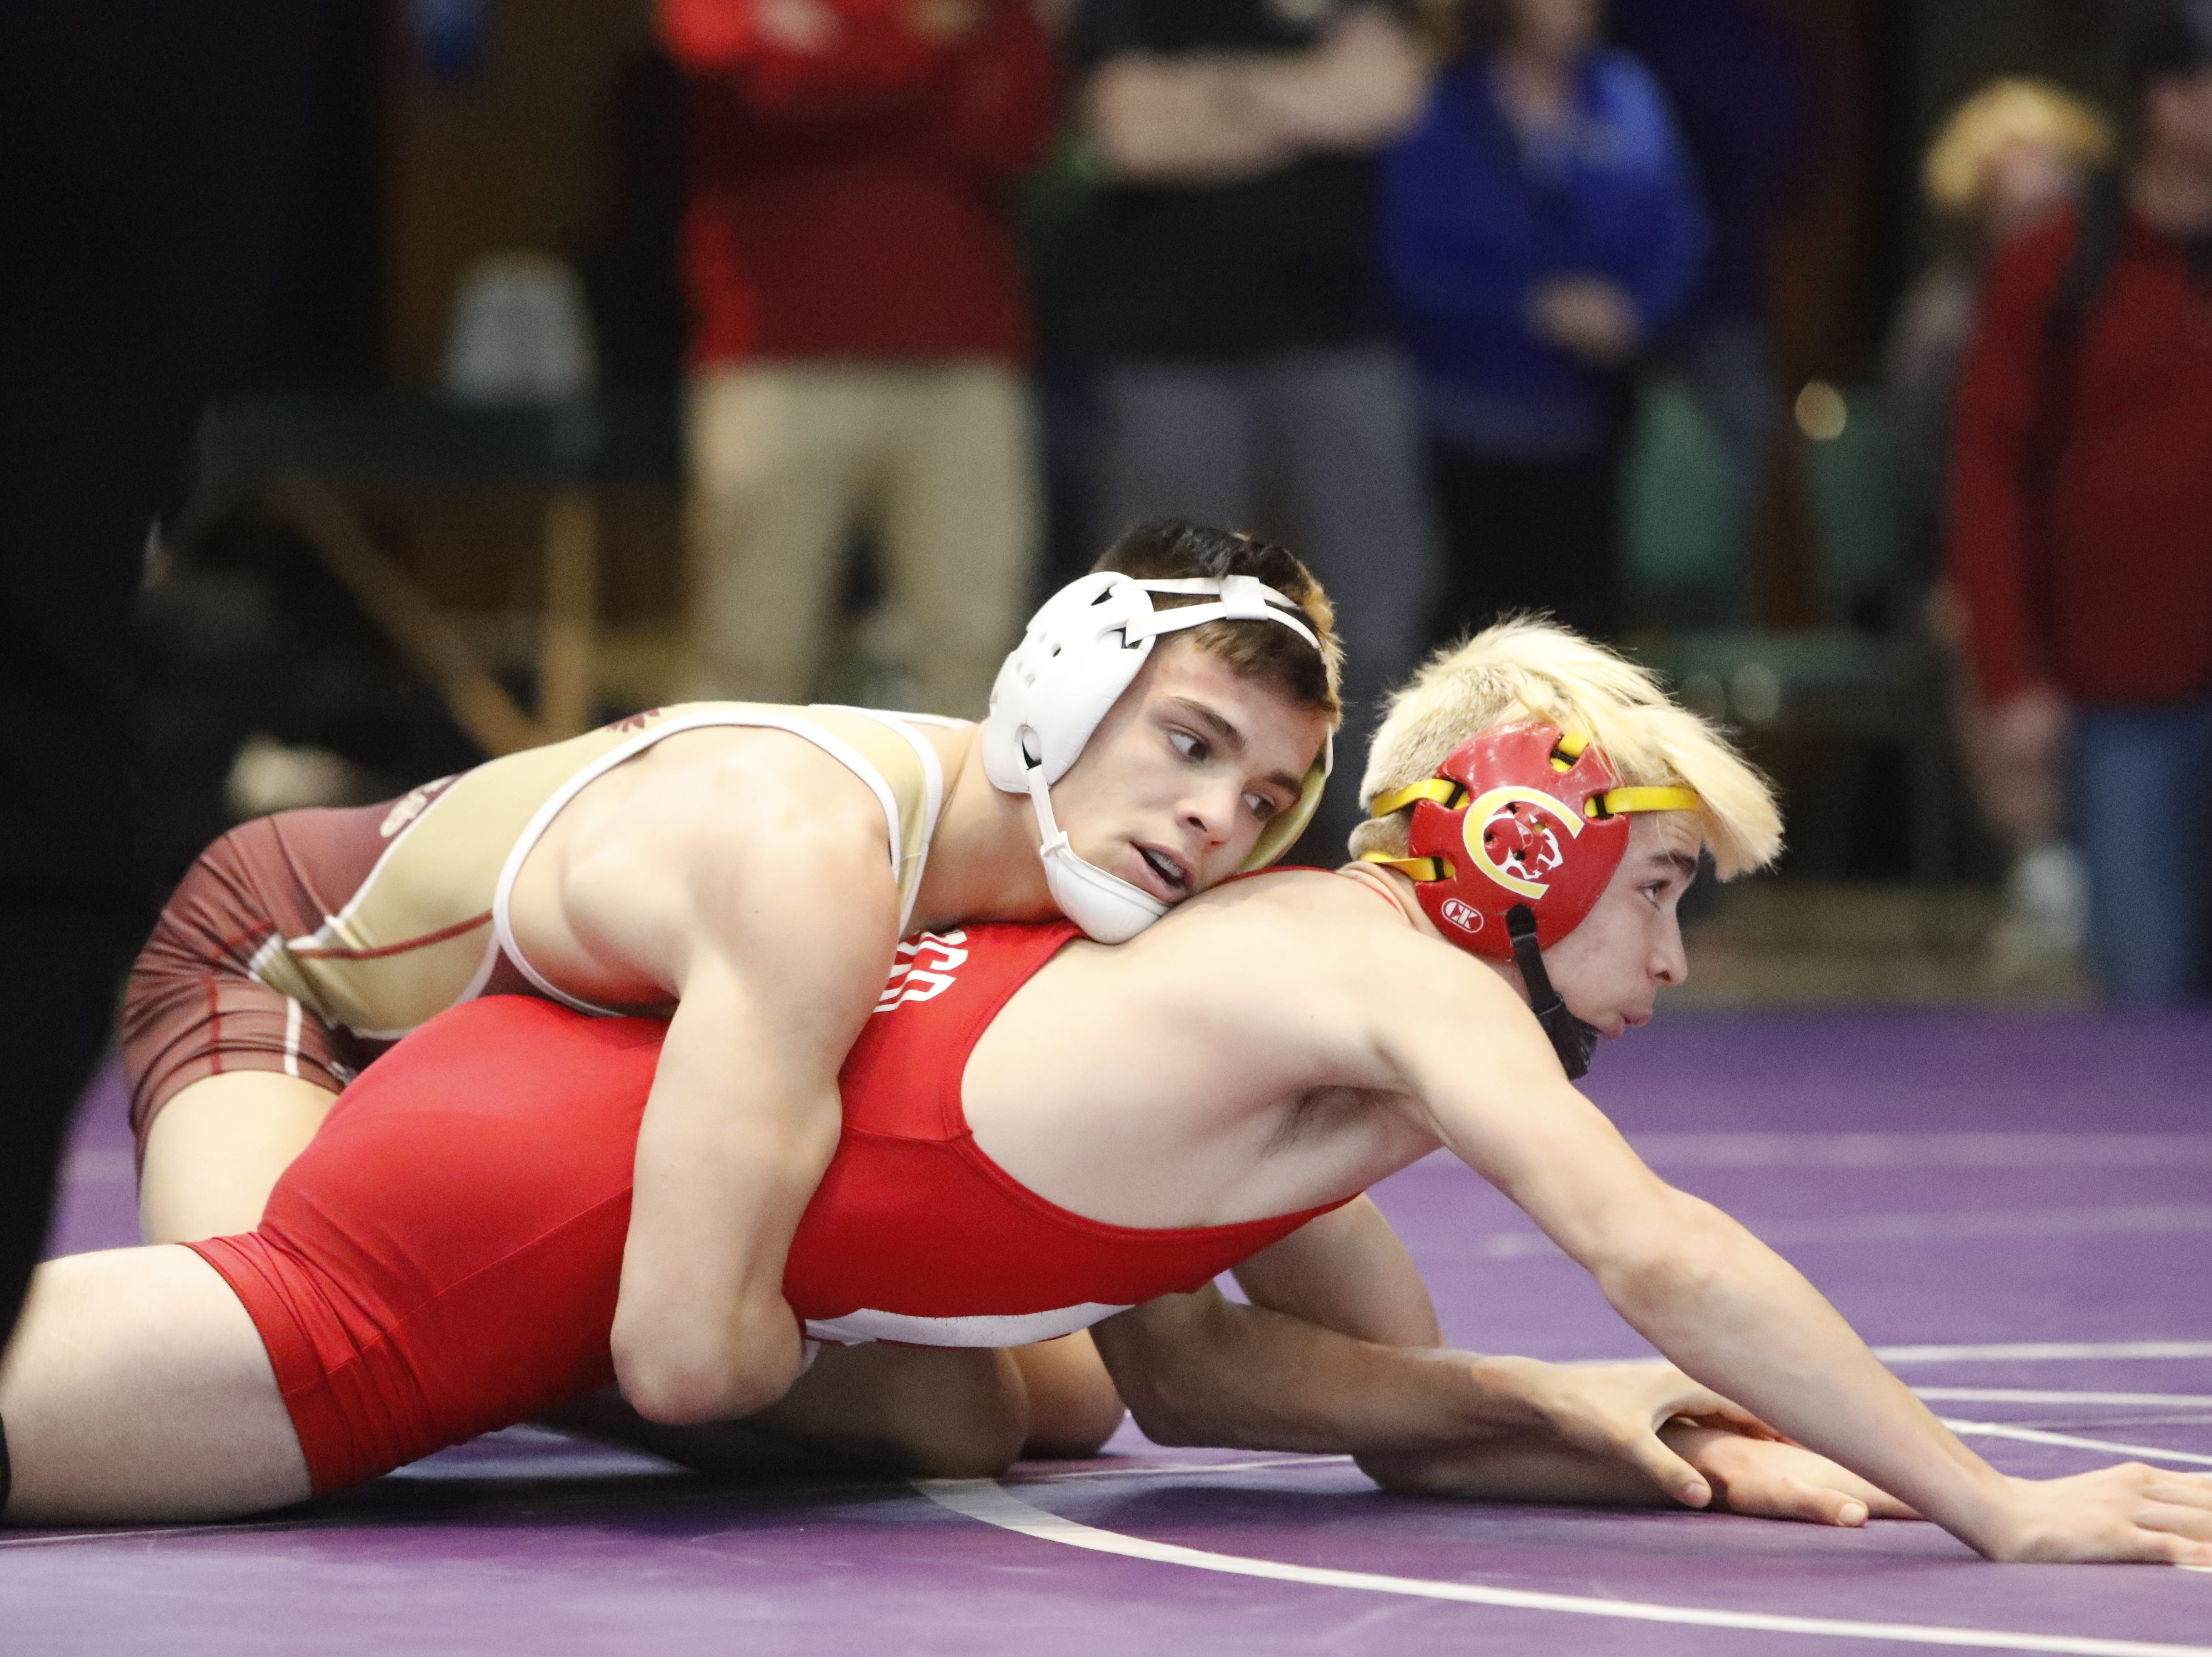 West Valley's Rocky Raby (left) grapples with Chico's Alex Rudkin on his way to winning the 132-pound Northern Section championship on Friday, Feb. 15, at the Redding Civic Auditorium.